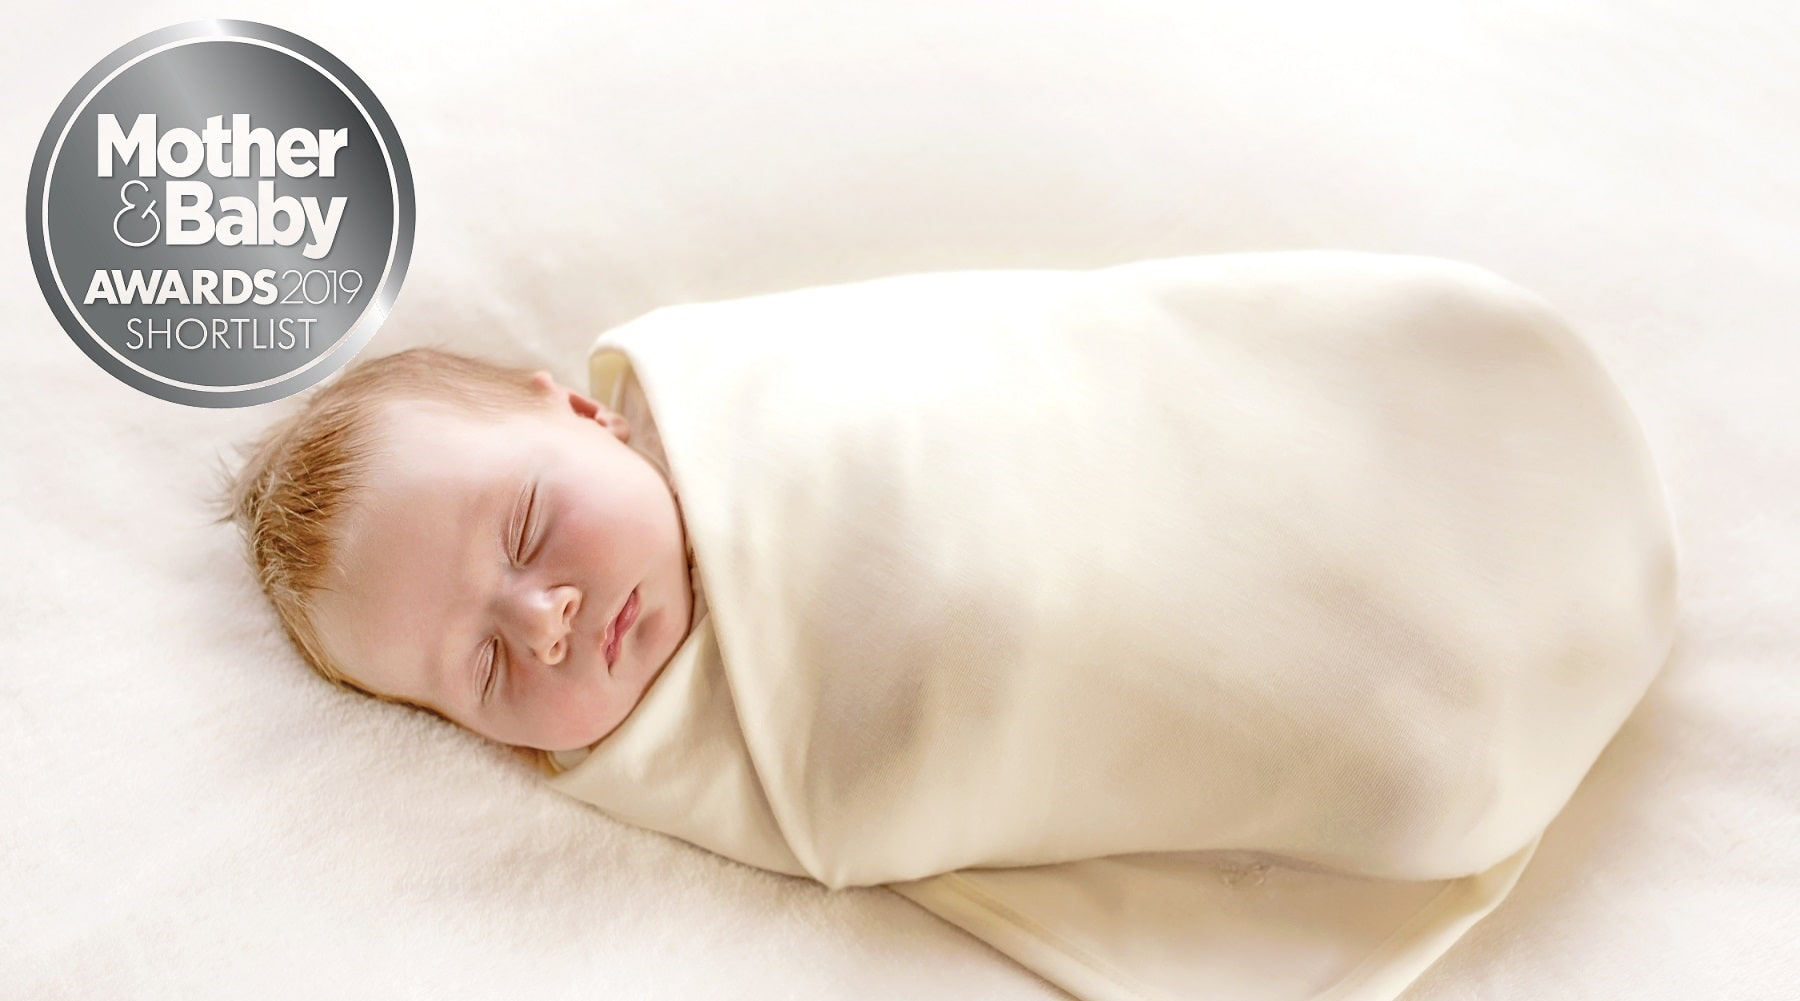 Best Product for a Newborn - our merino swaddle blanket for babies gets international recognition